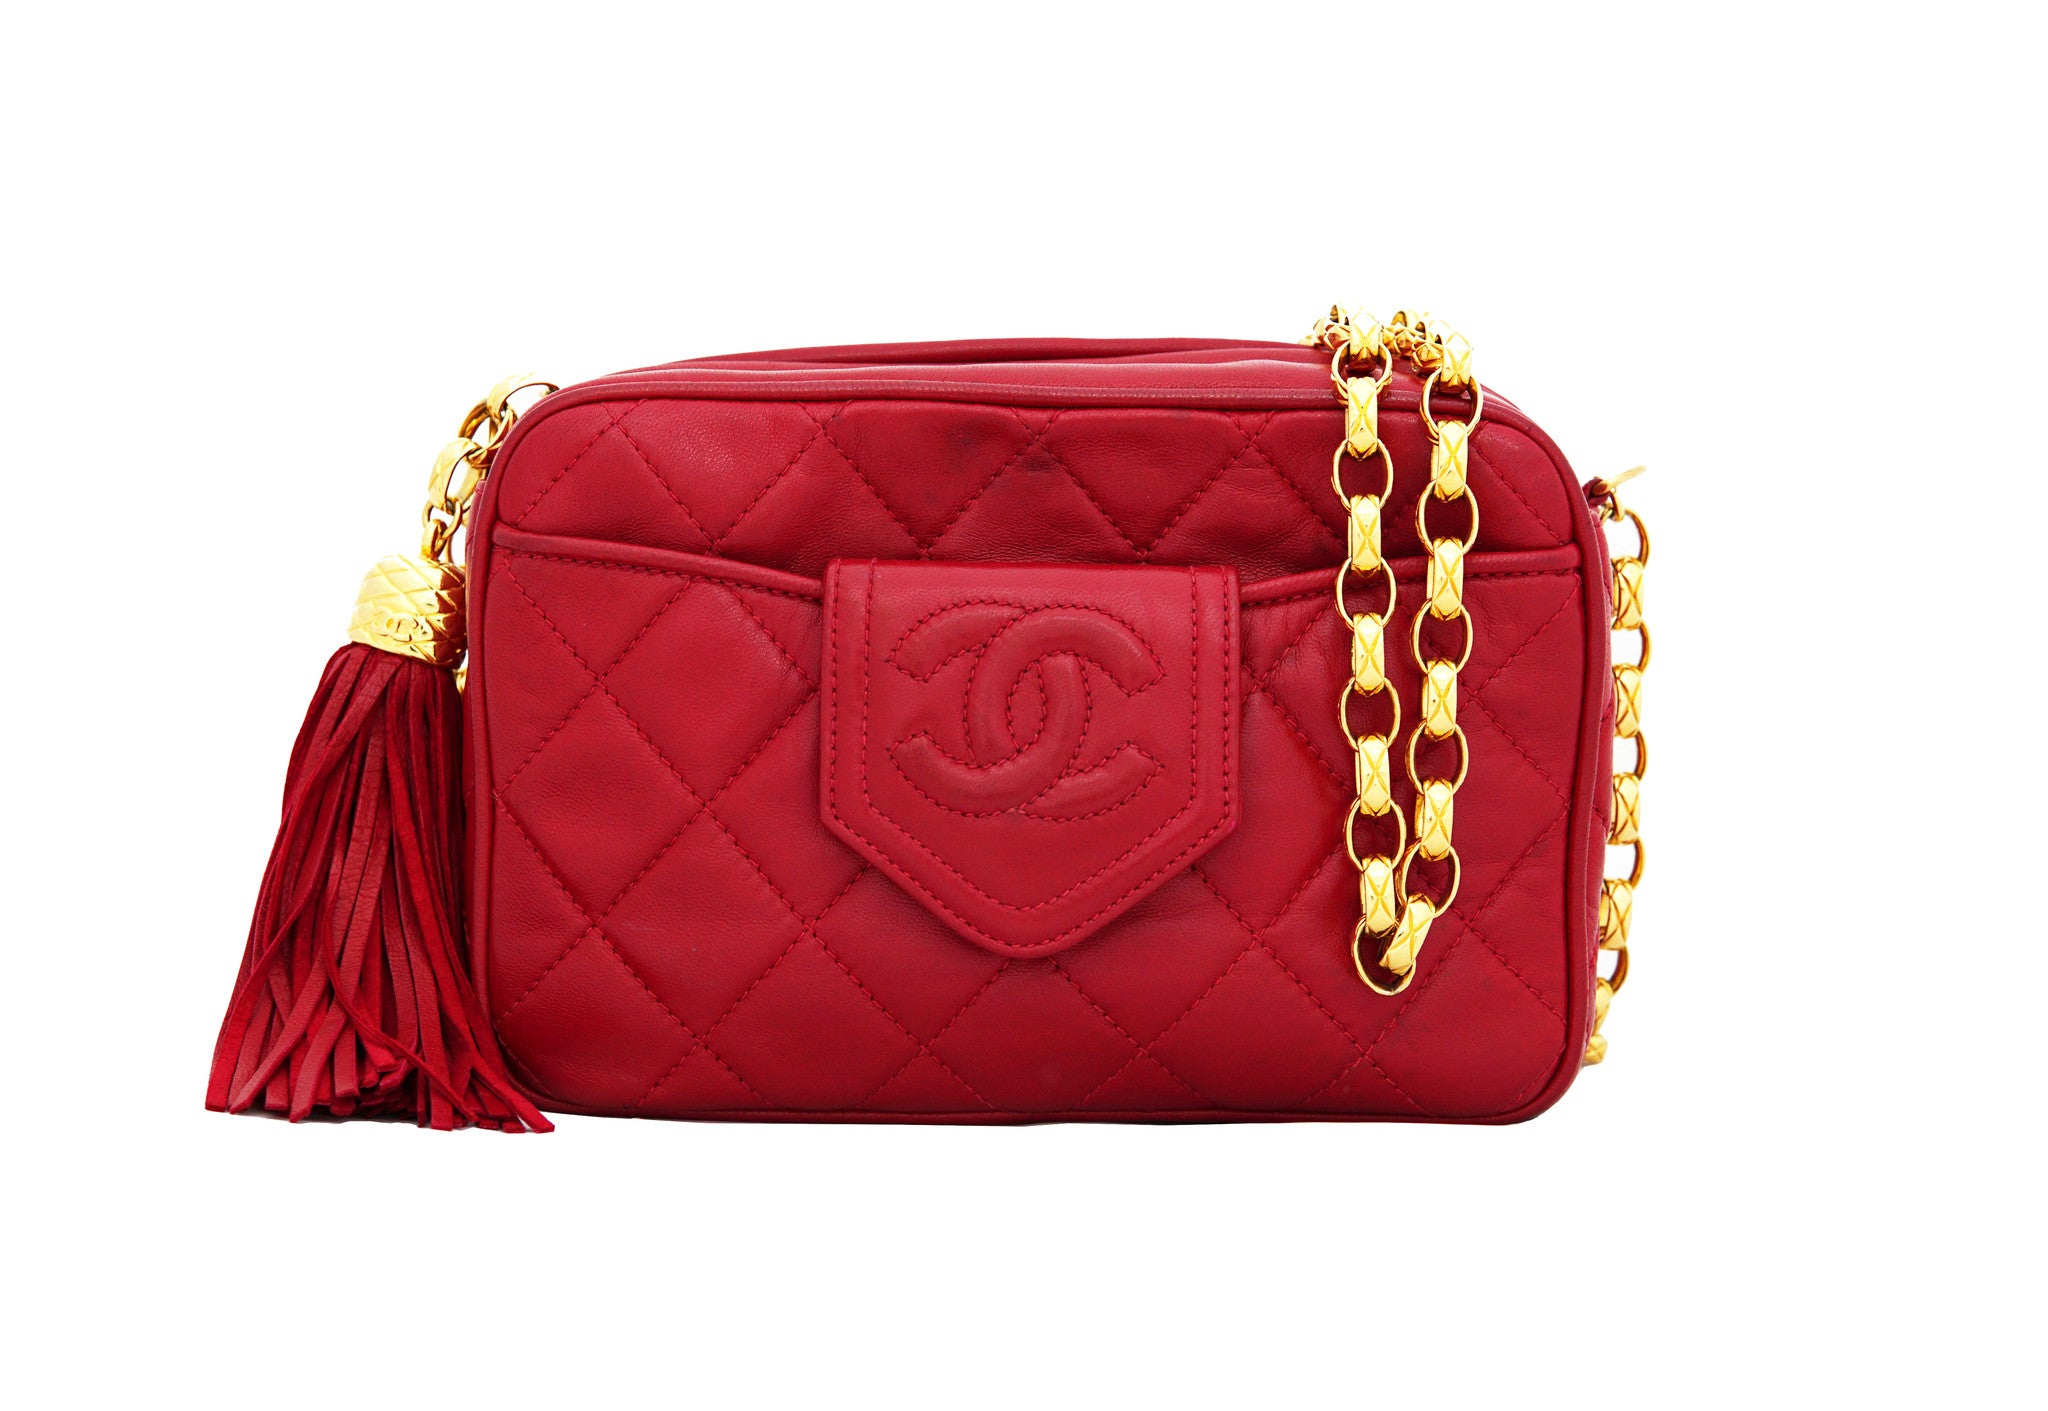 e20882ae80aa CHANEL VINTAGE BAG - Mini Camera Tassel Bag with Bijoux Chain ...